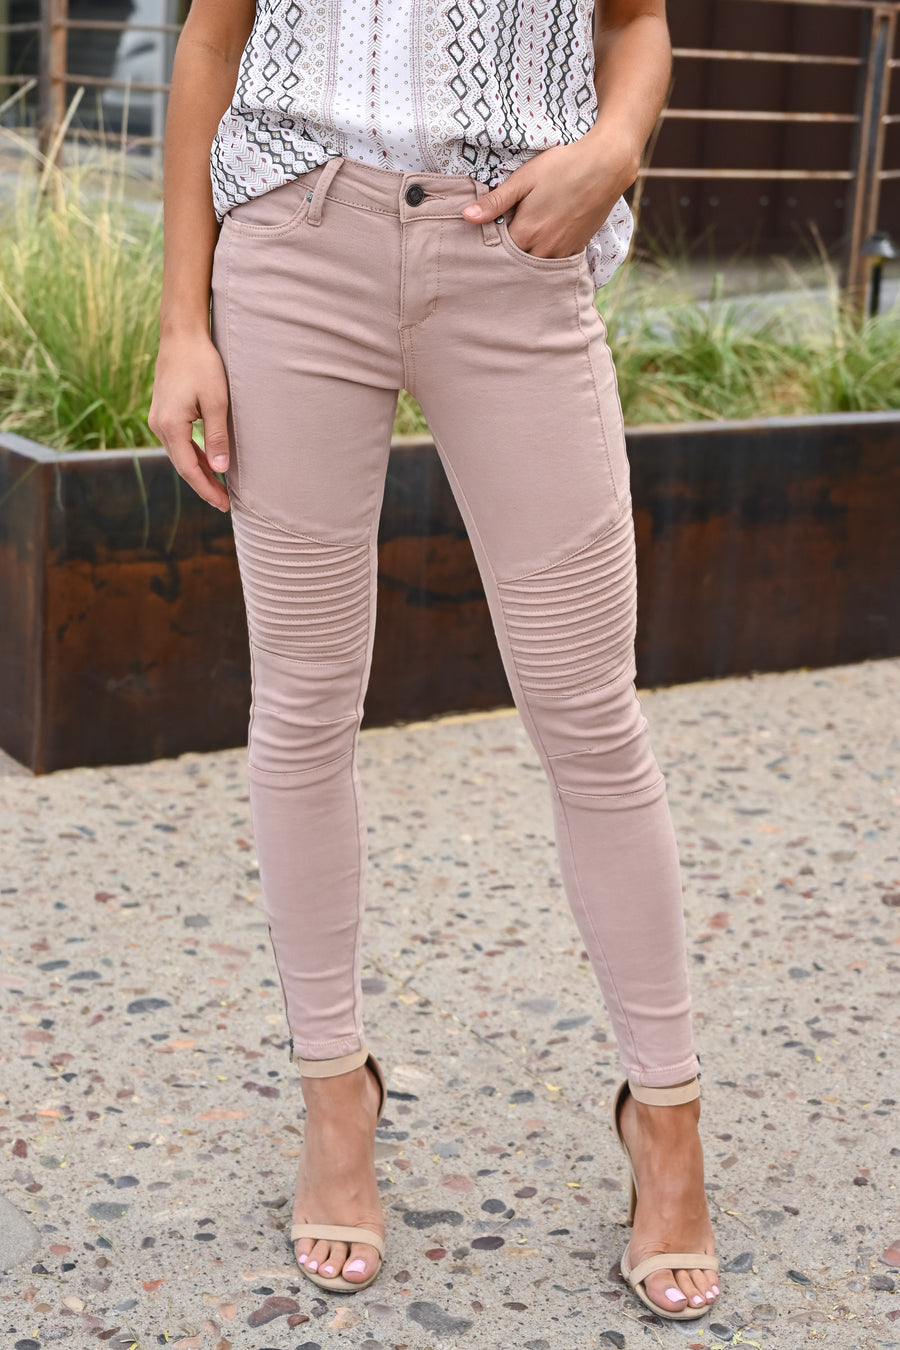 Miss Independent Moto Skinny Jeans - Dusty Rose women's textured jeans, Closet Candy Boutique 1